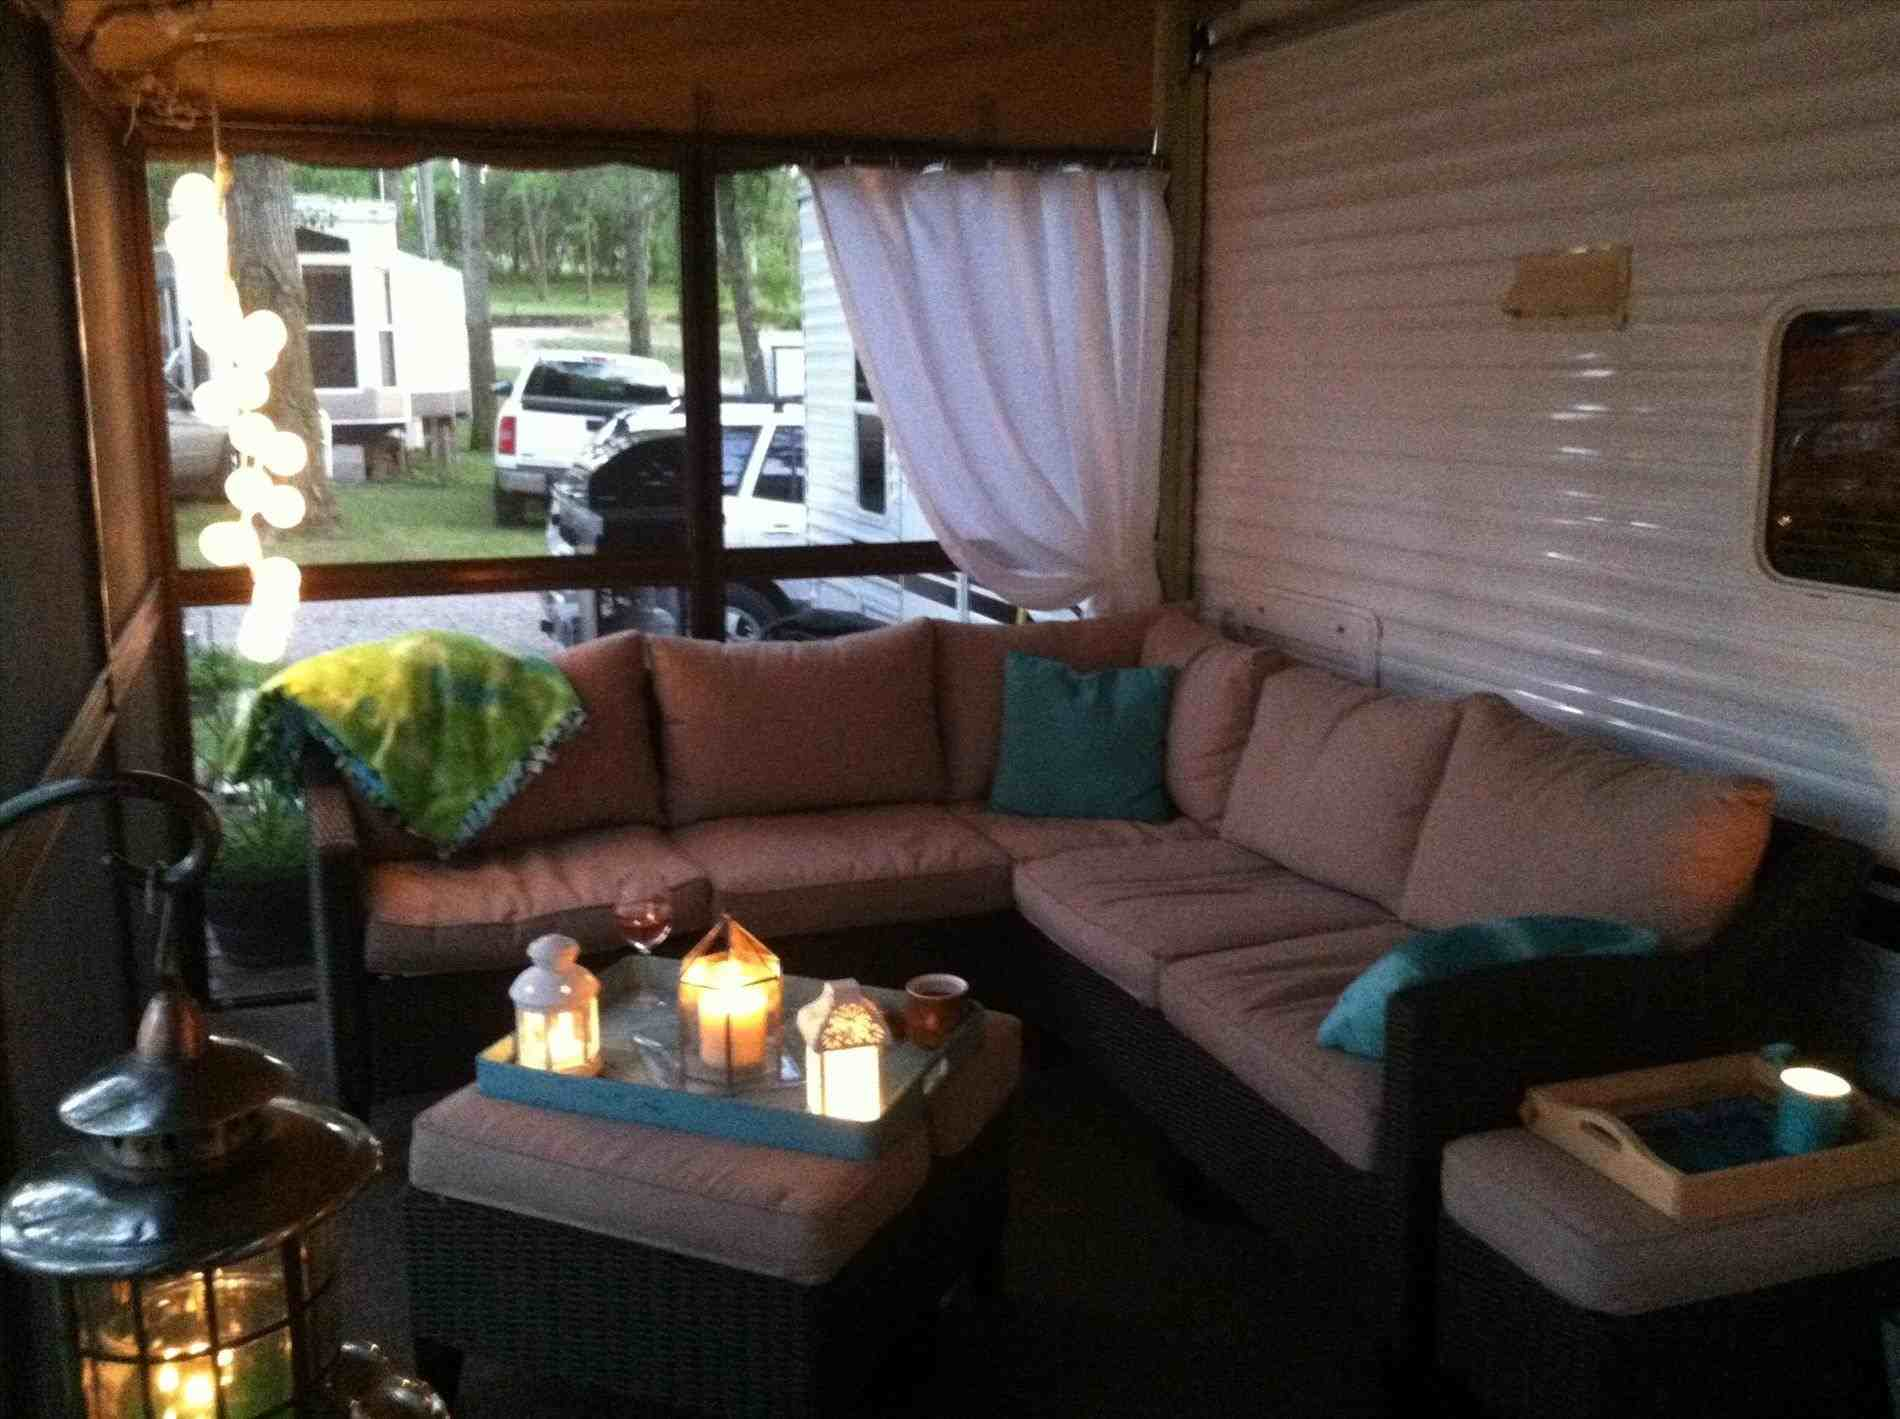 70 Stunning RV Living Camper Room Ideas Decorations Make Your Summer Awesome (31)